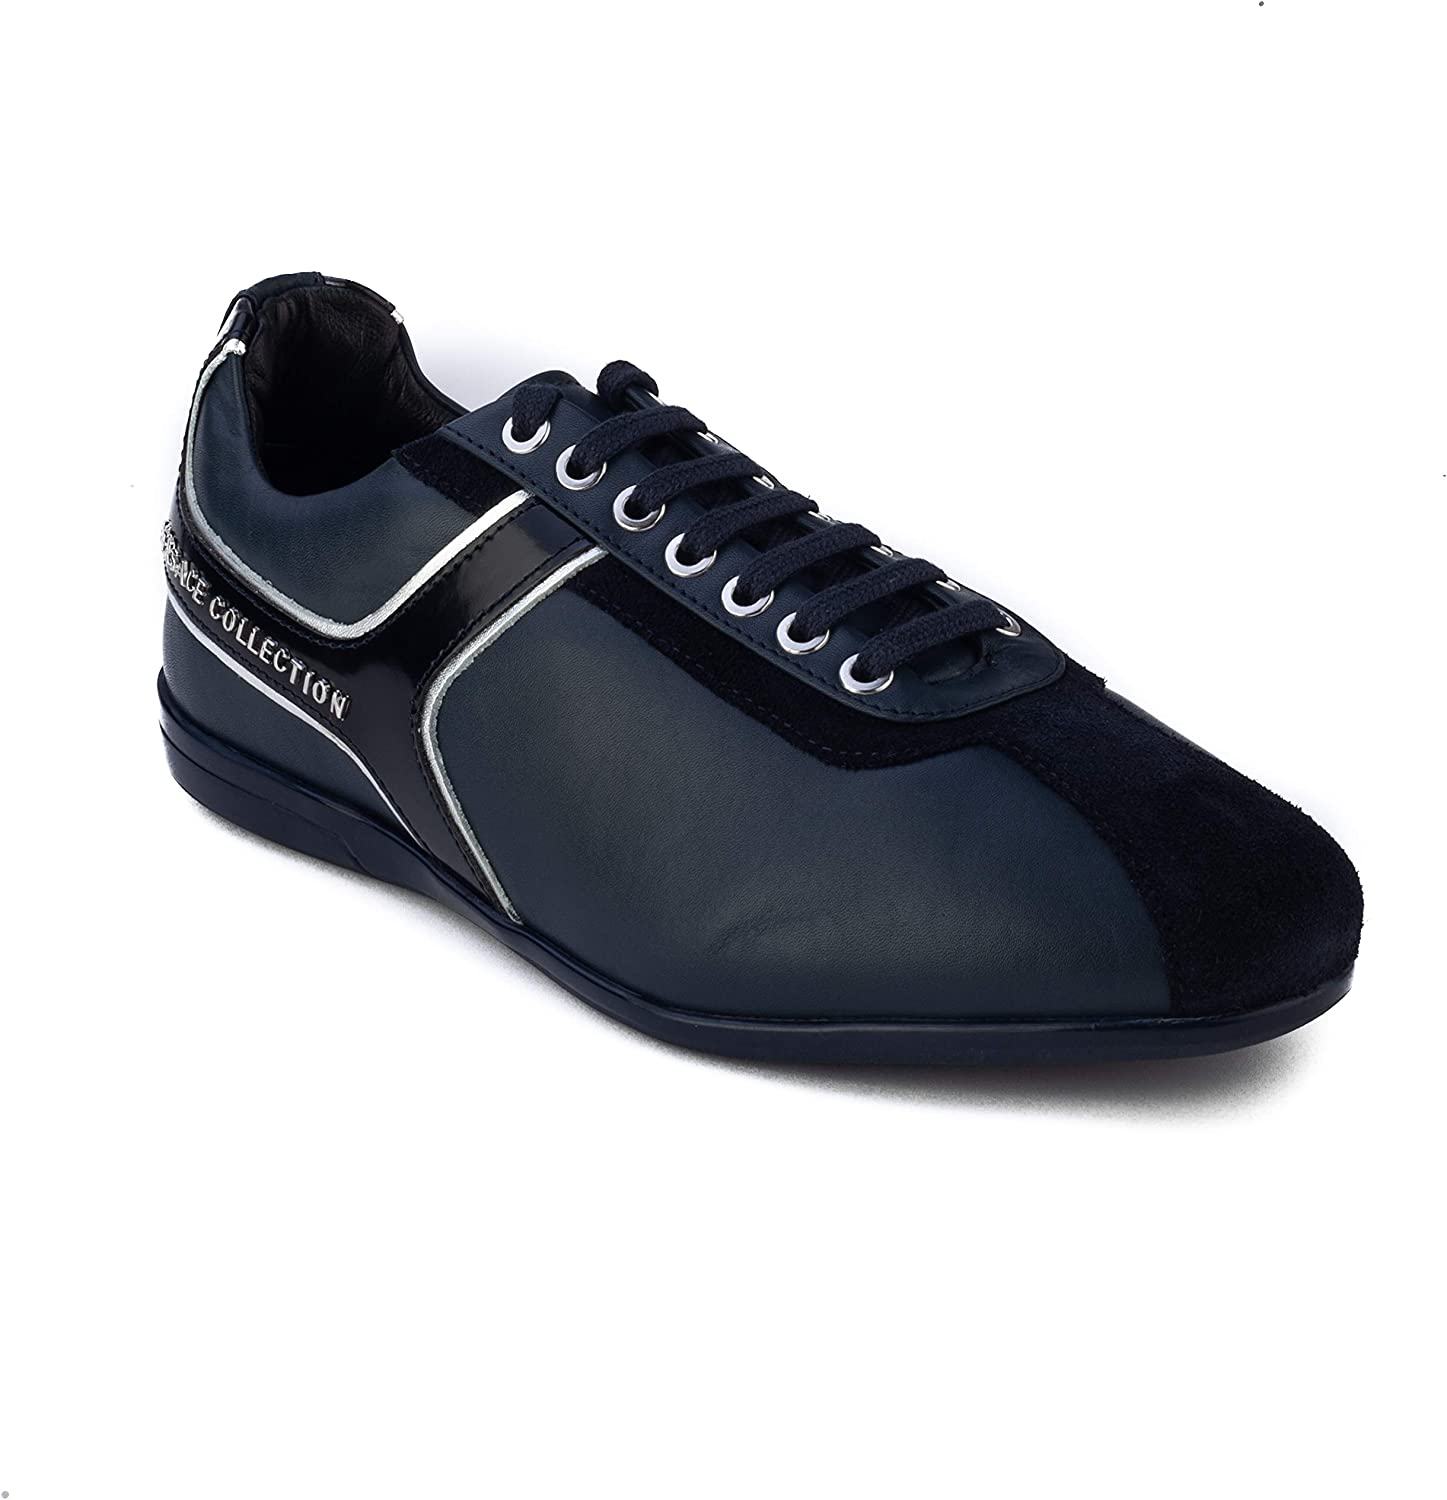 Versace Collection LOGO Men/'s shoes Fashion Sneakers Leather 100/% AUTHENTIC